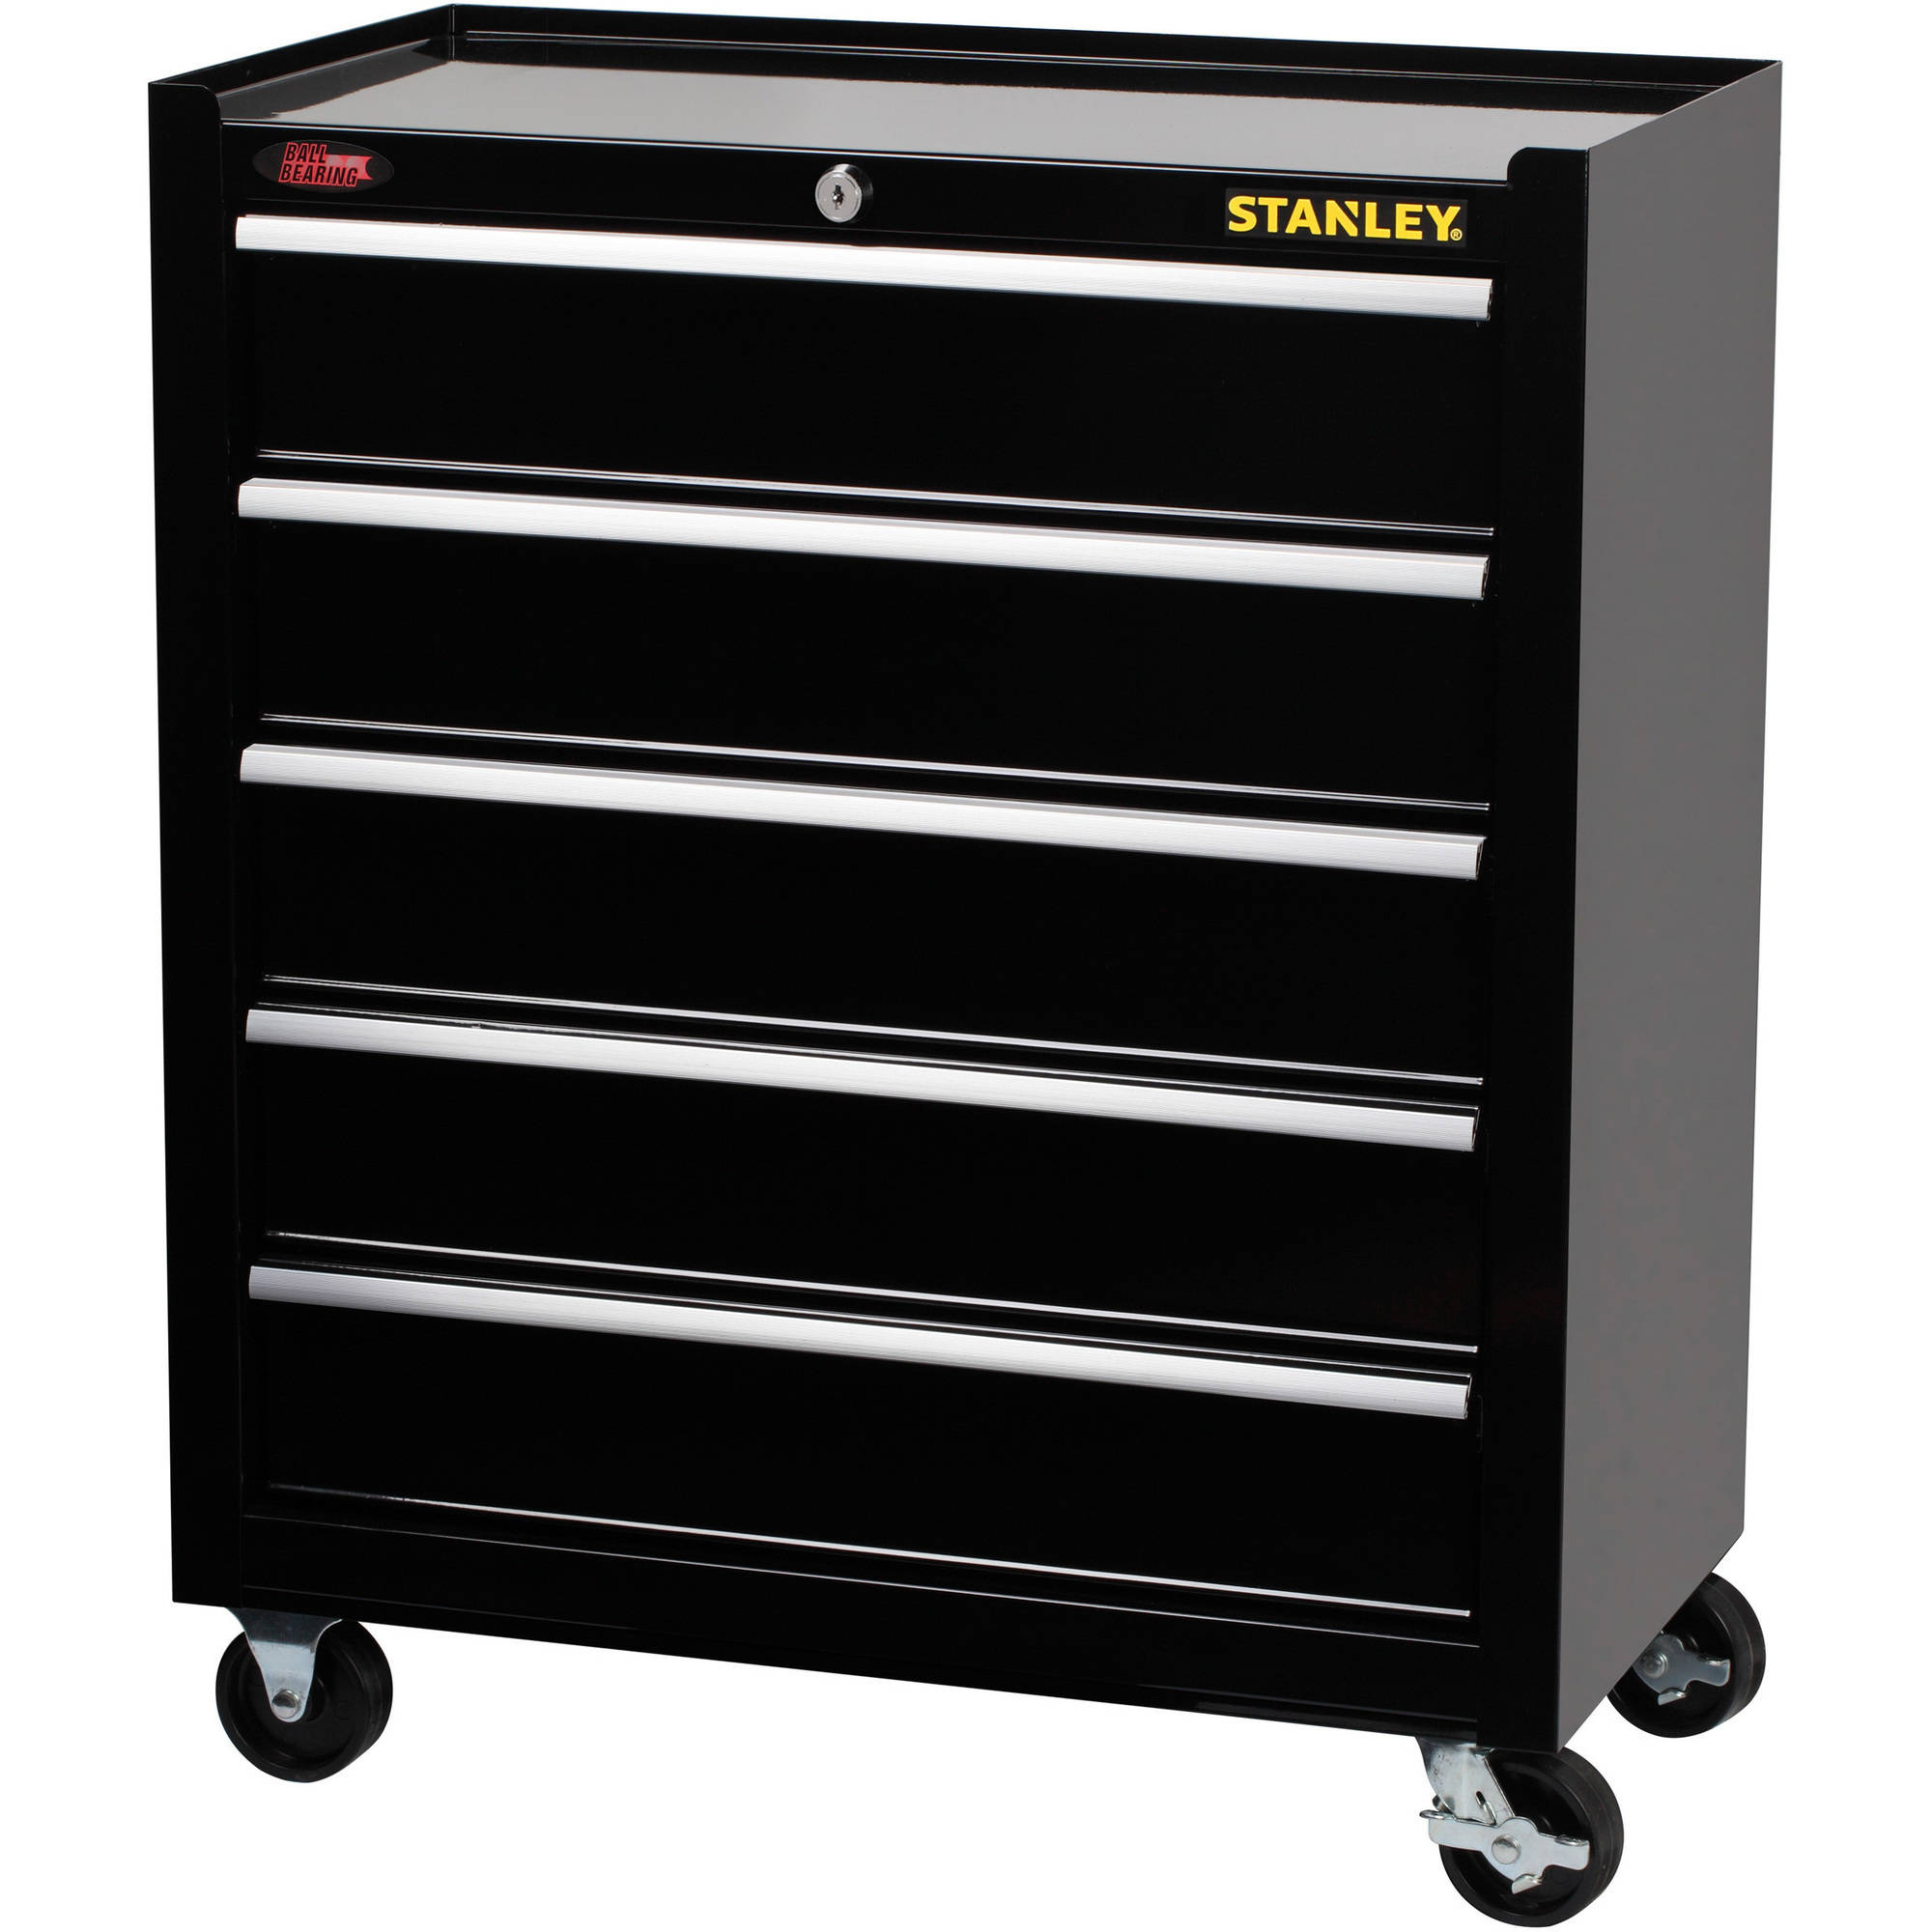 stanley 13 drawer tool chest and cabinet set - chest of drawers